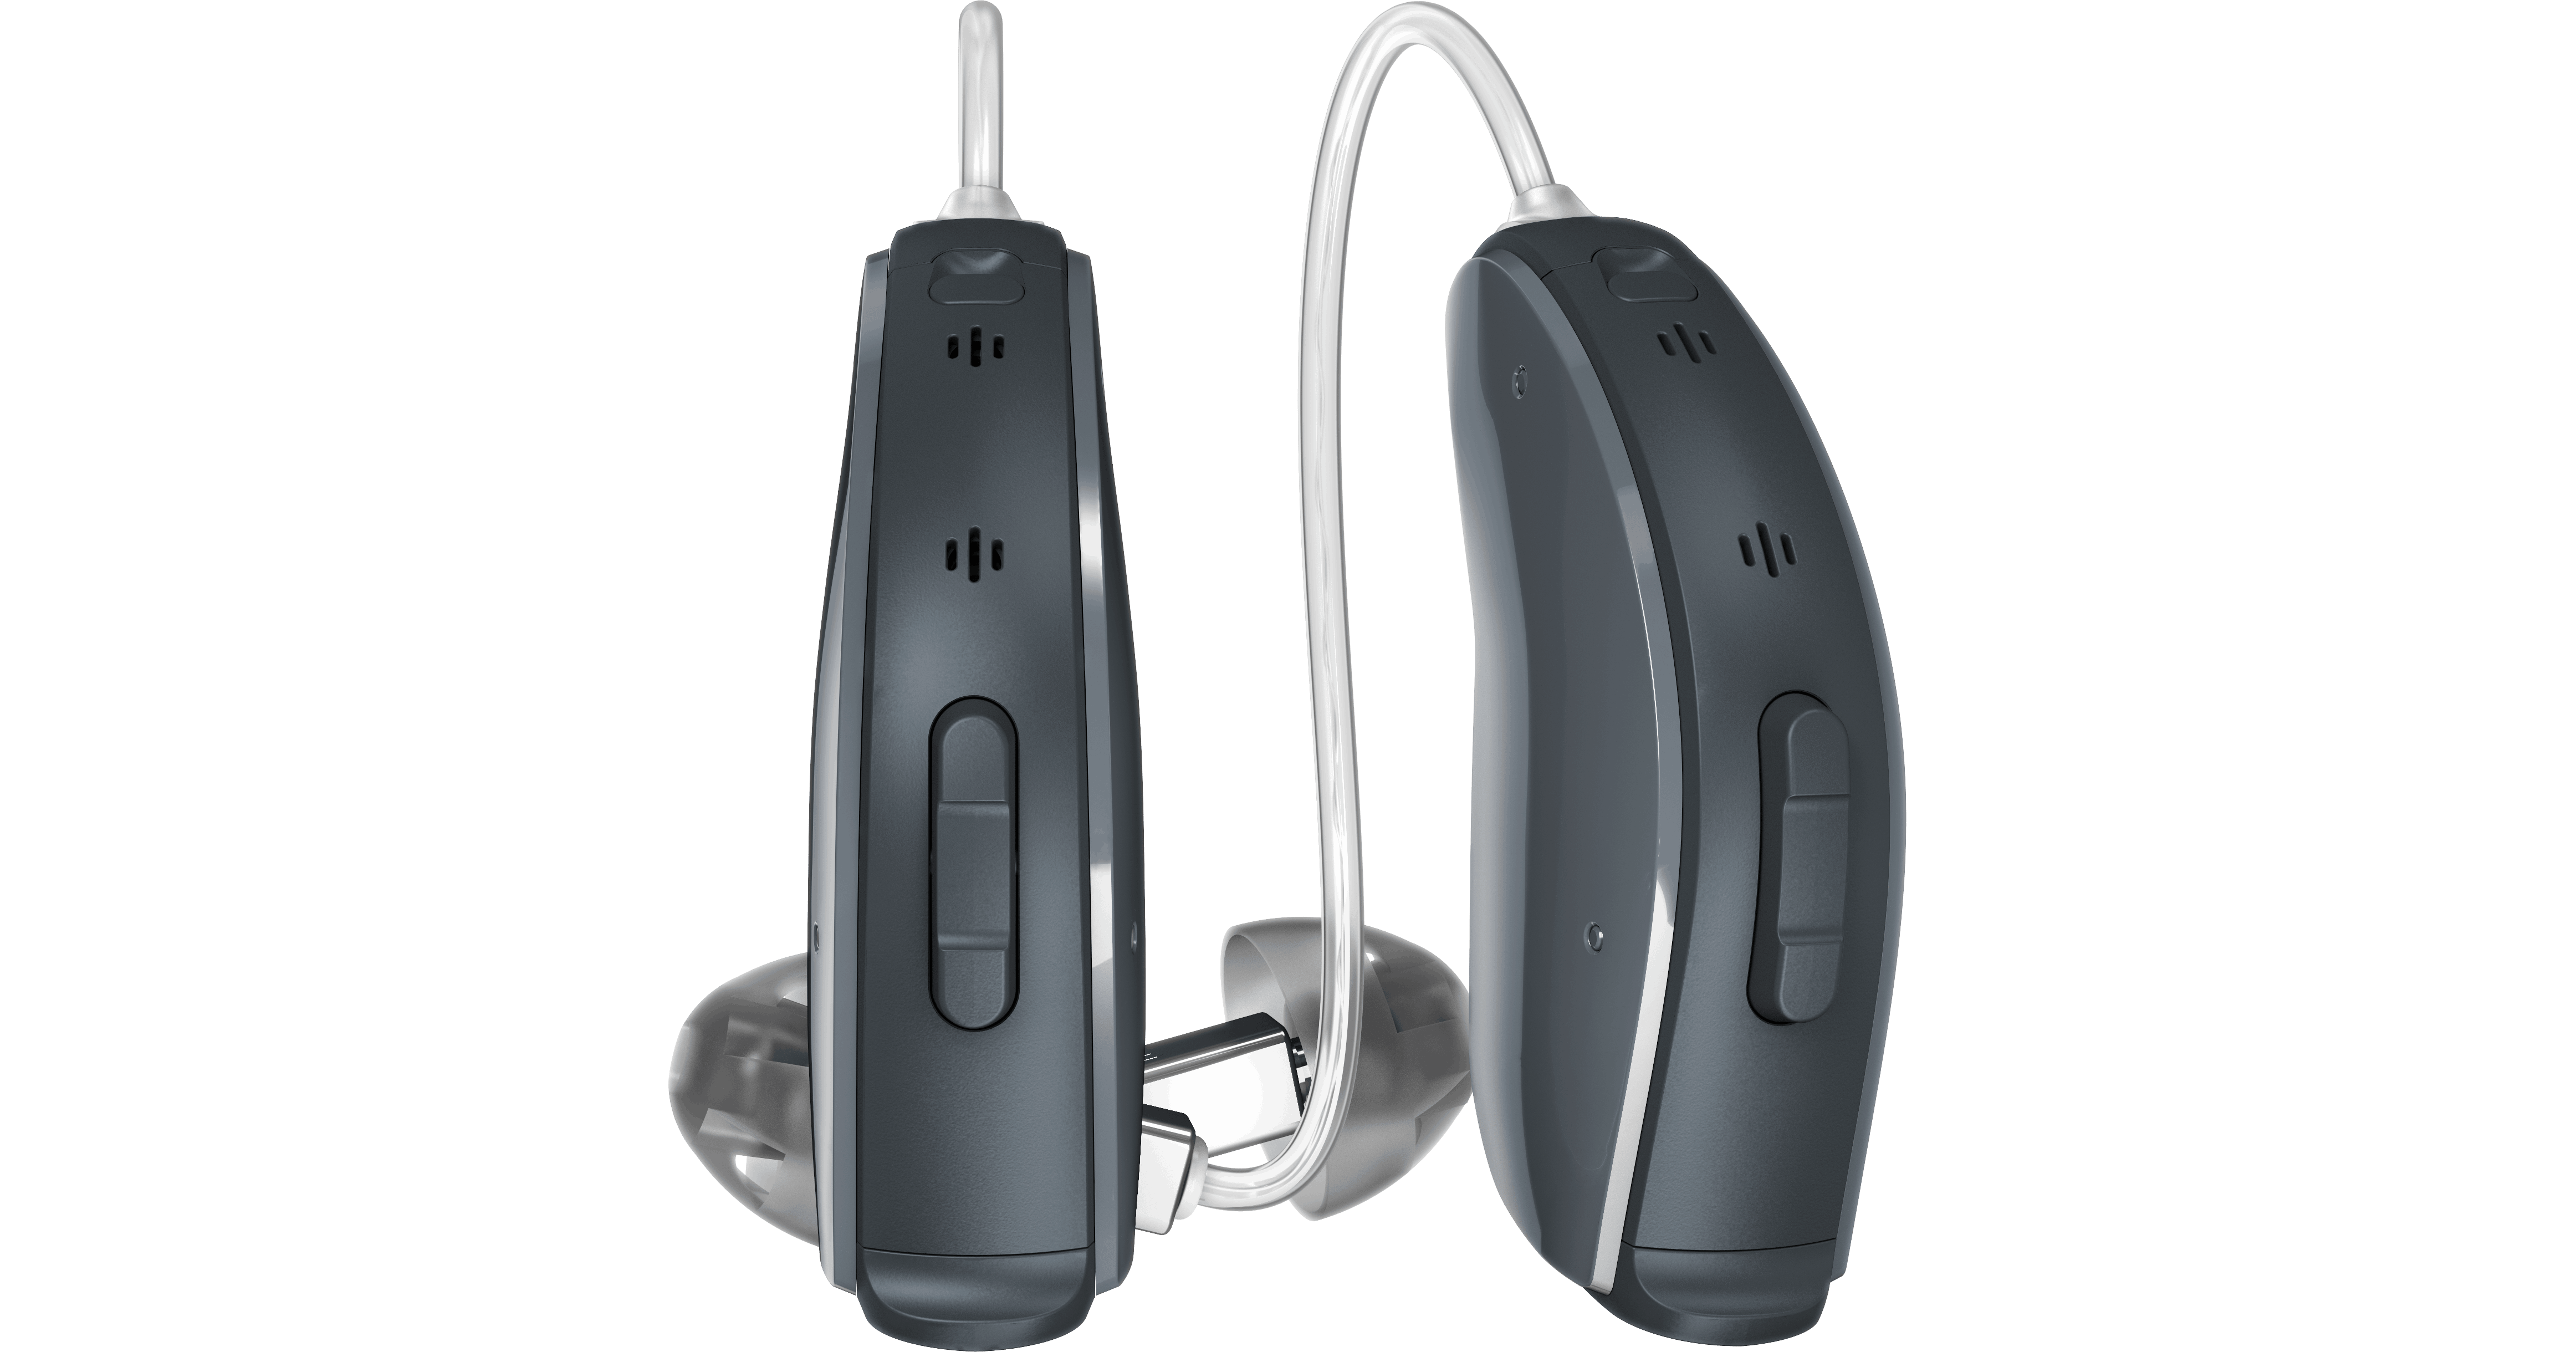 Pair of ReSound LiNX² hearing aids.